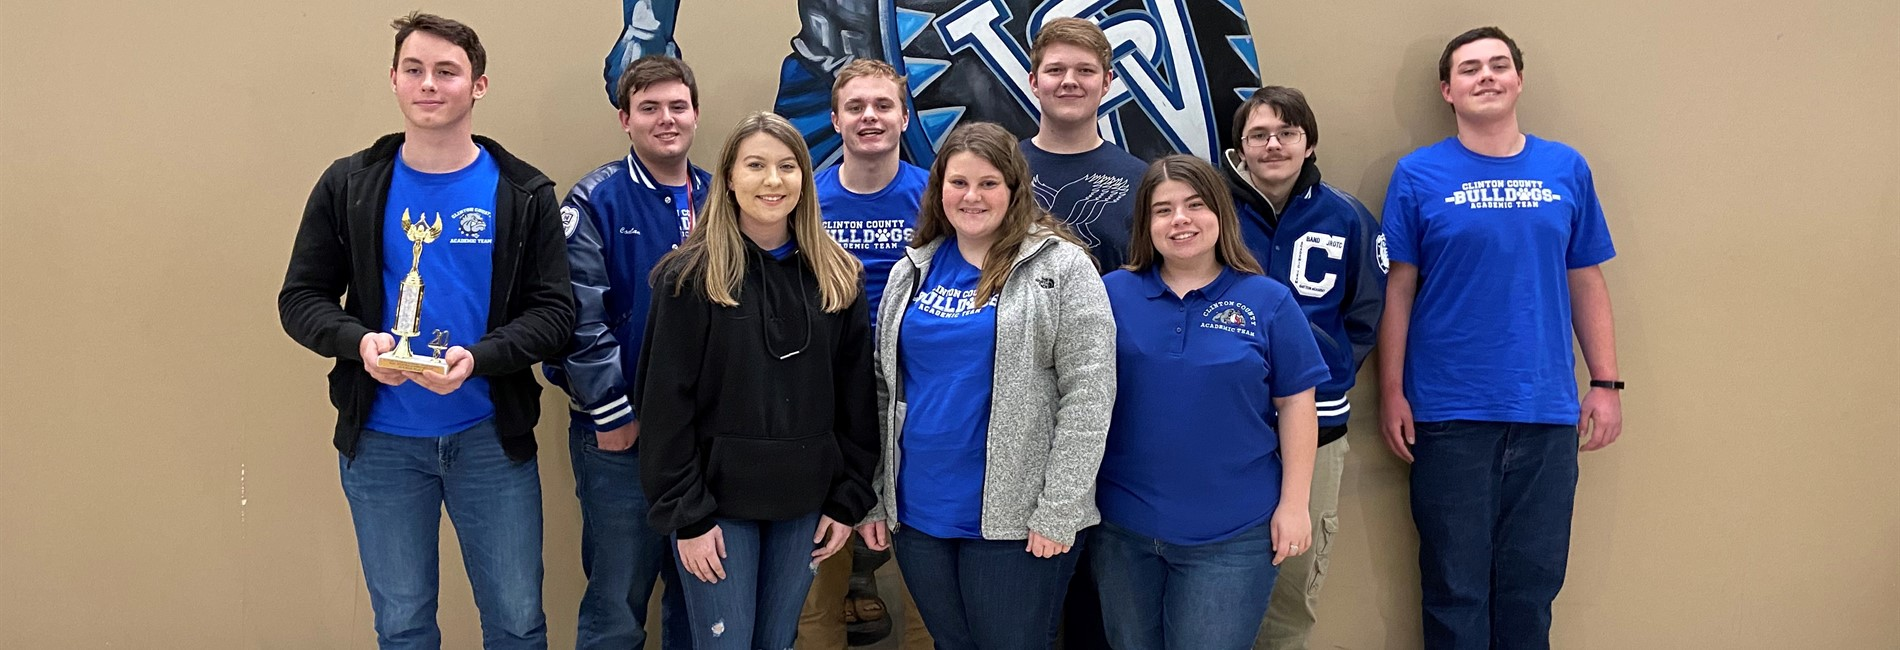 The CCHS Academic Team placed 5th overall out of 15 schools in the Regional Governor's Cup Competition.